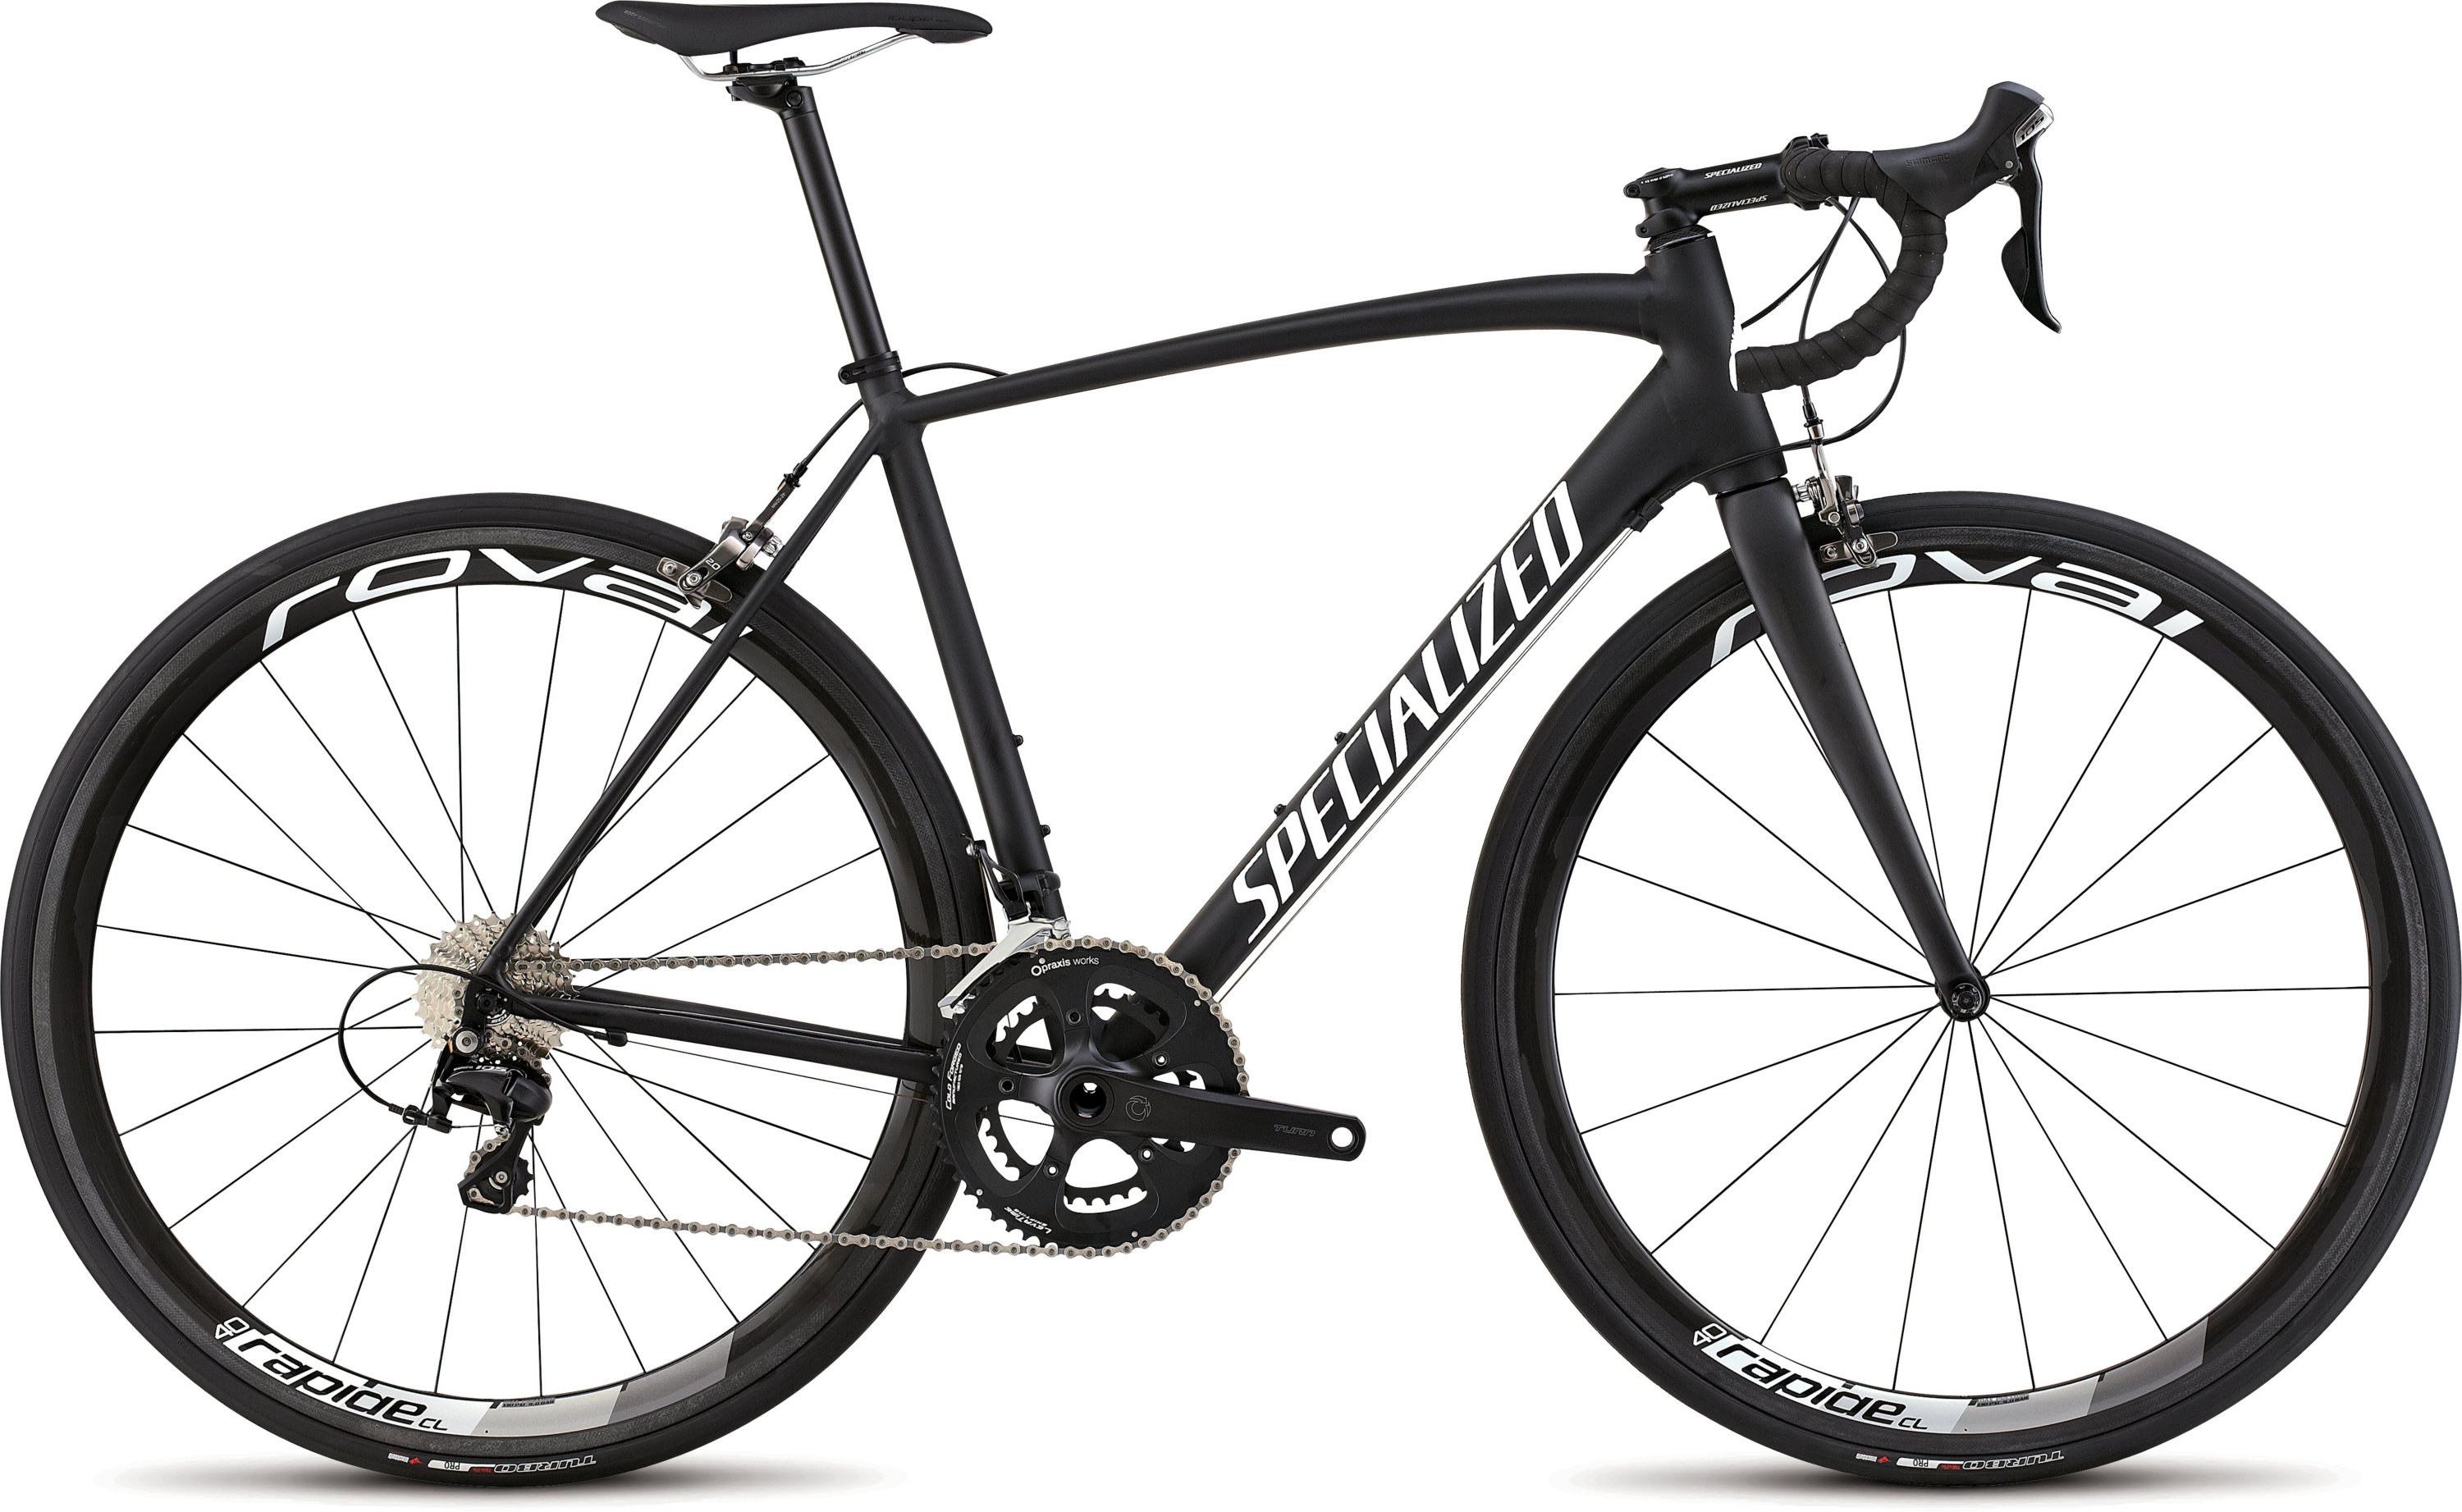 Allez Comp Race | Specialized com